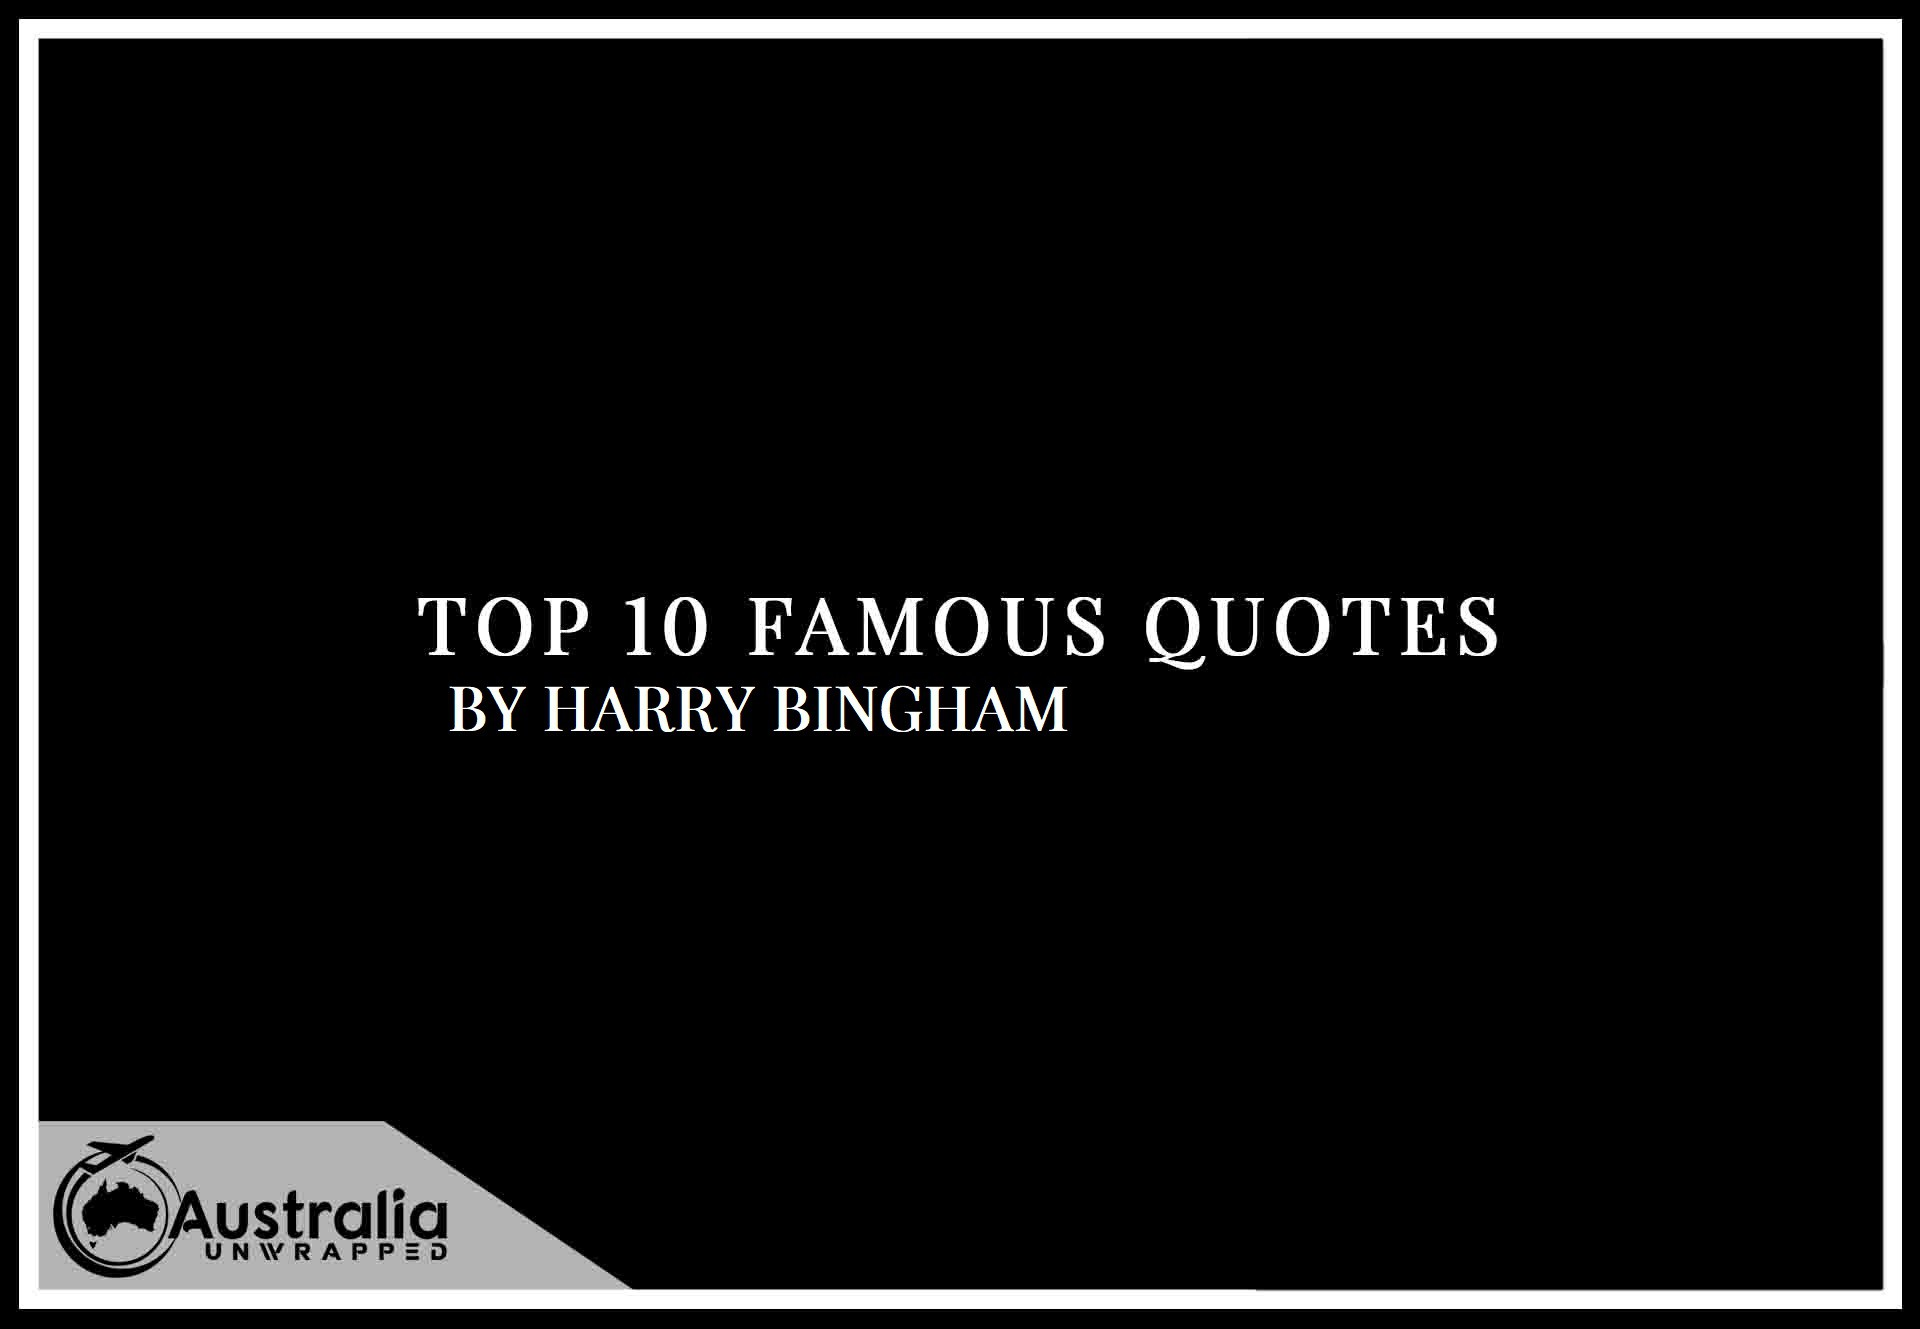 Top 10 Famous Quotes by Author Harry Bingham